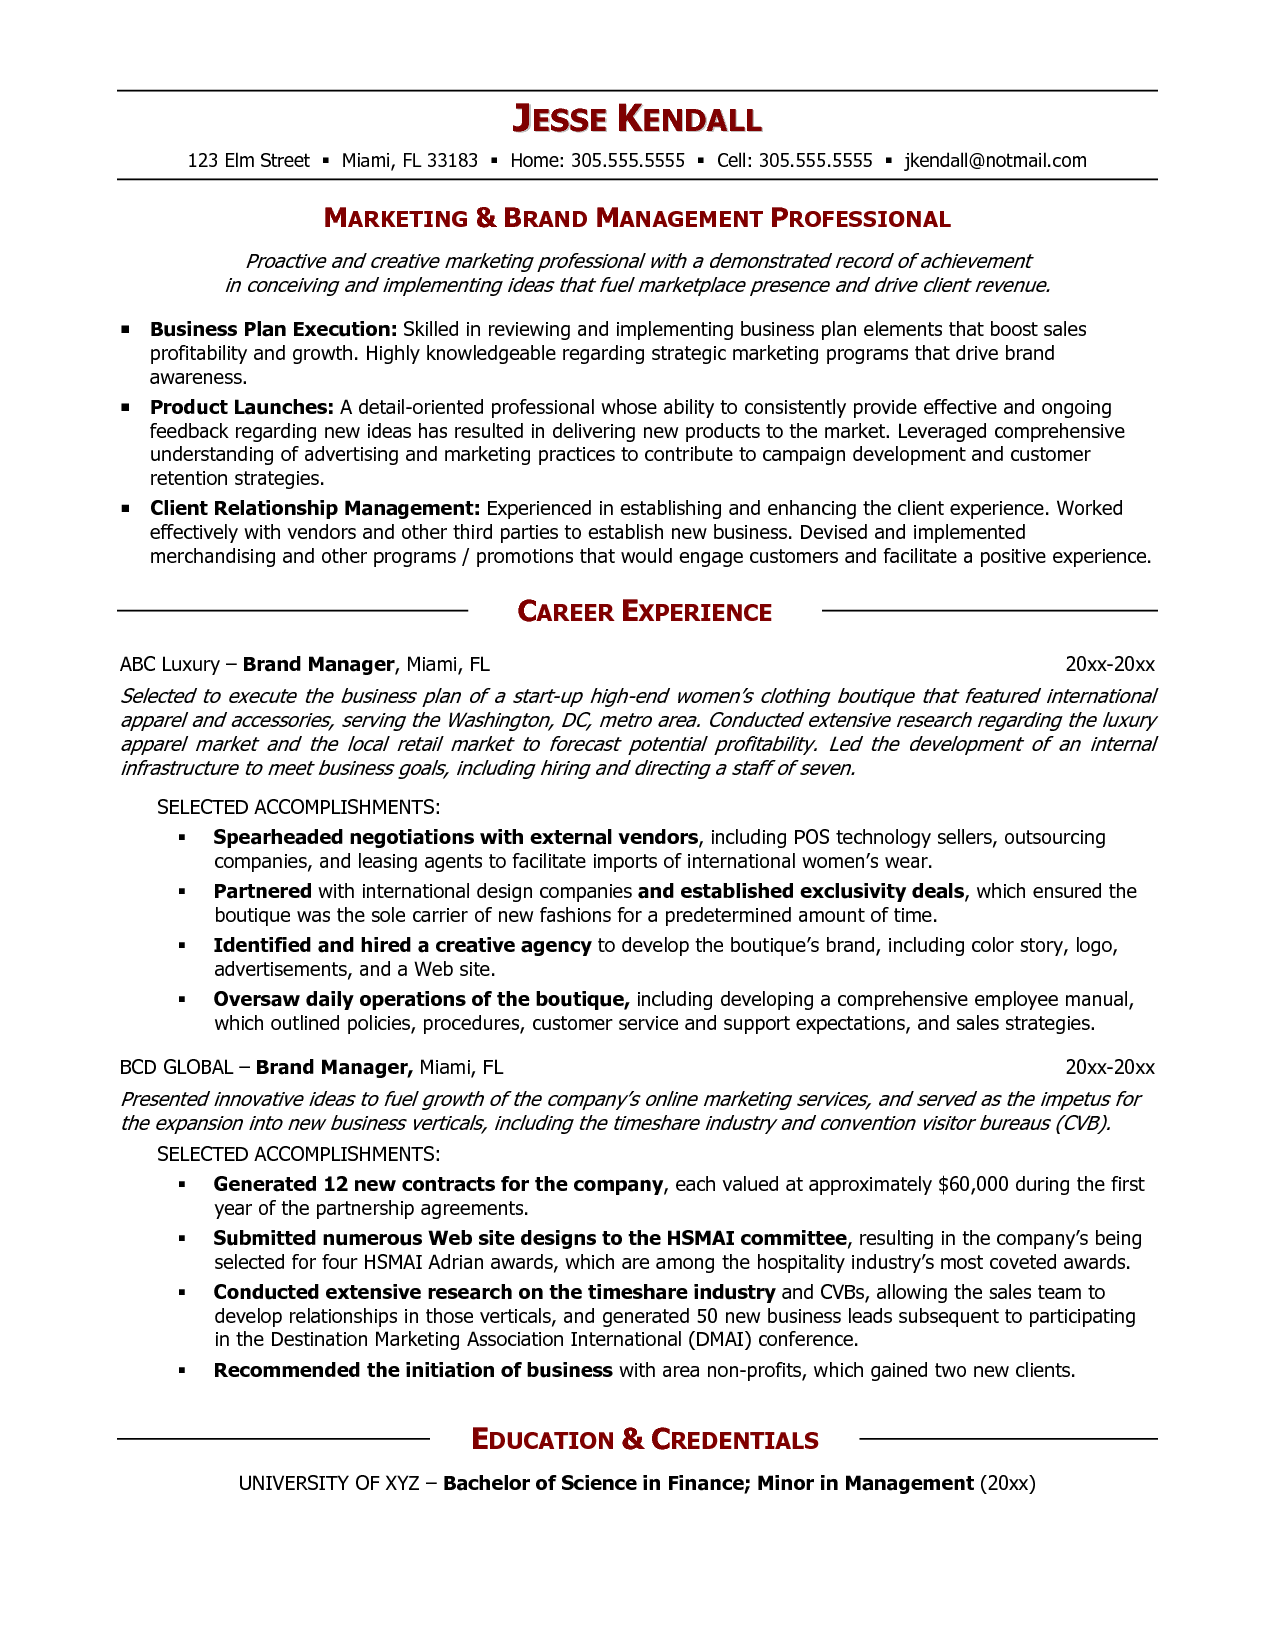 senior logistic management resume | Brand Manager Resume Example